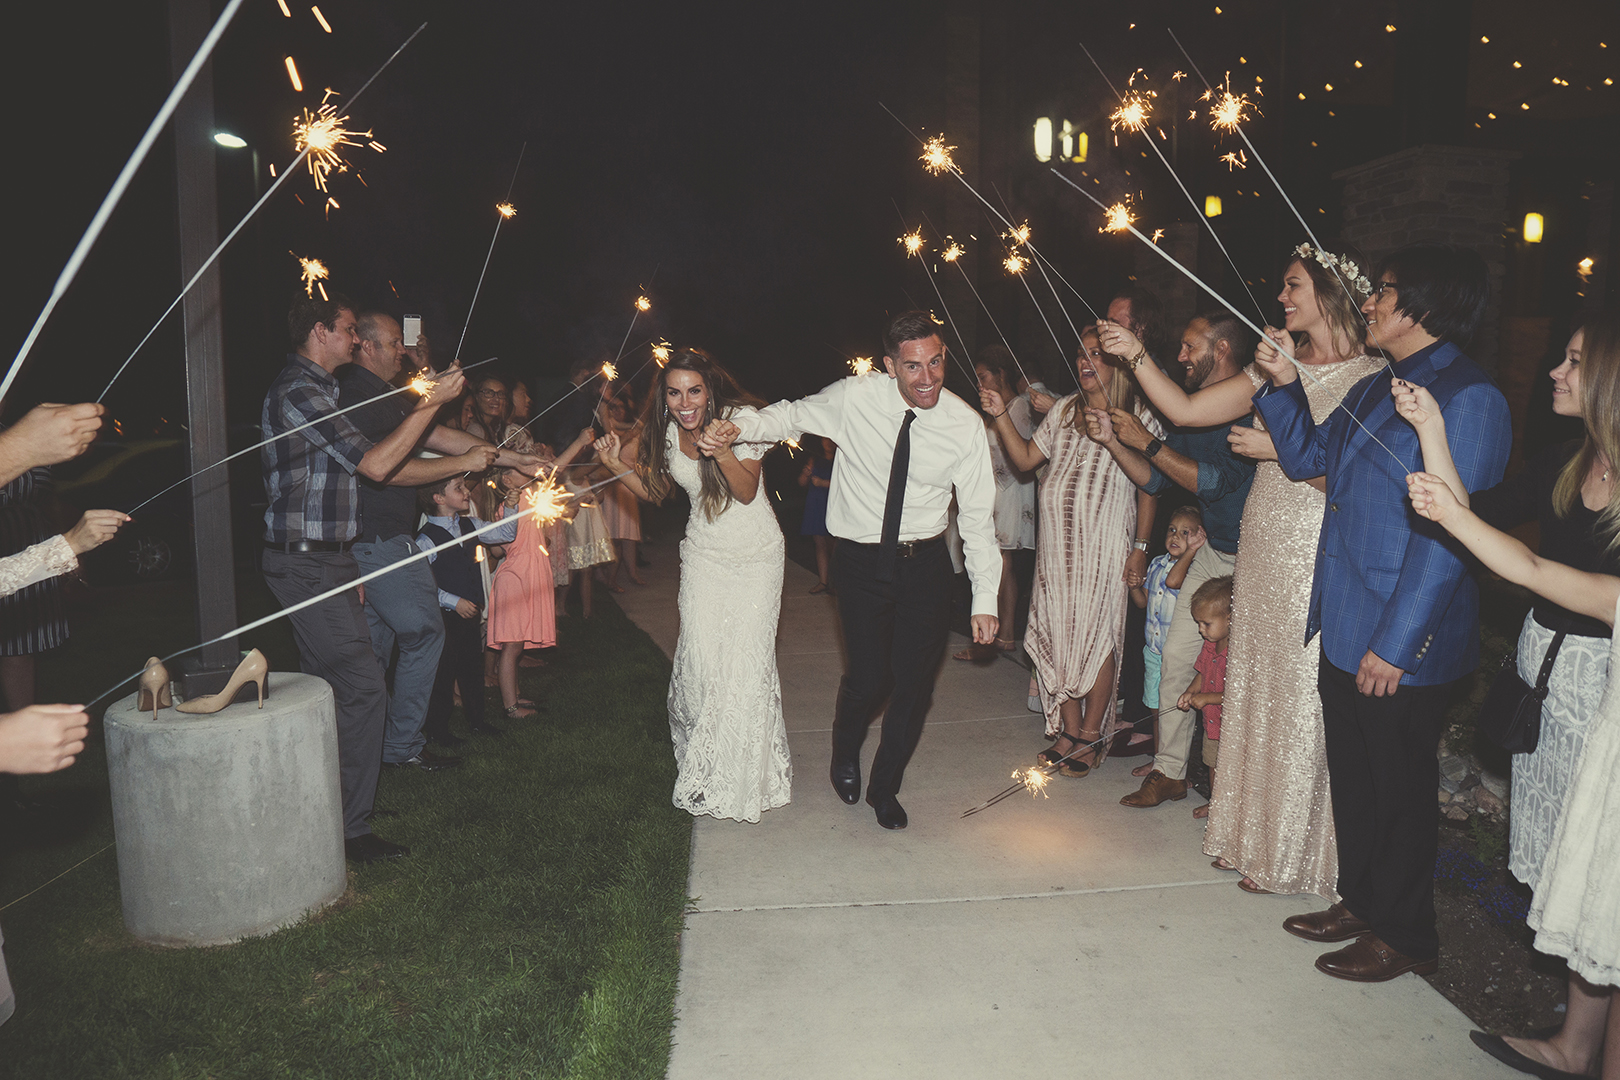 Bride and Groom Running through sparklers at wedding